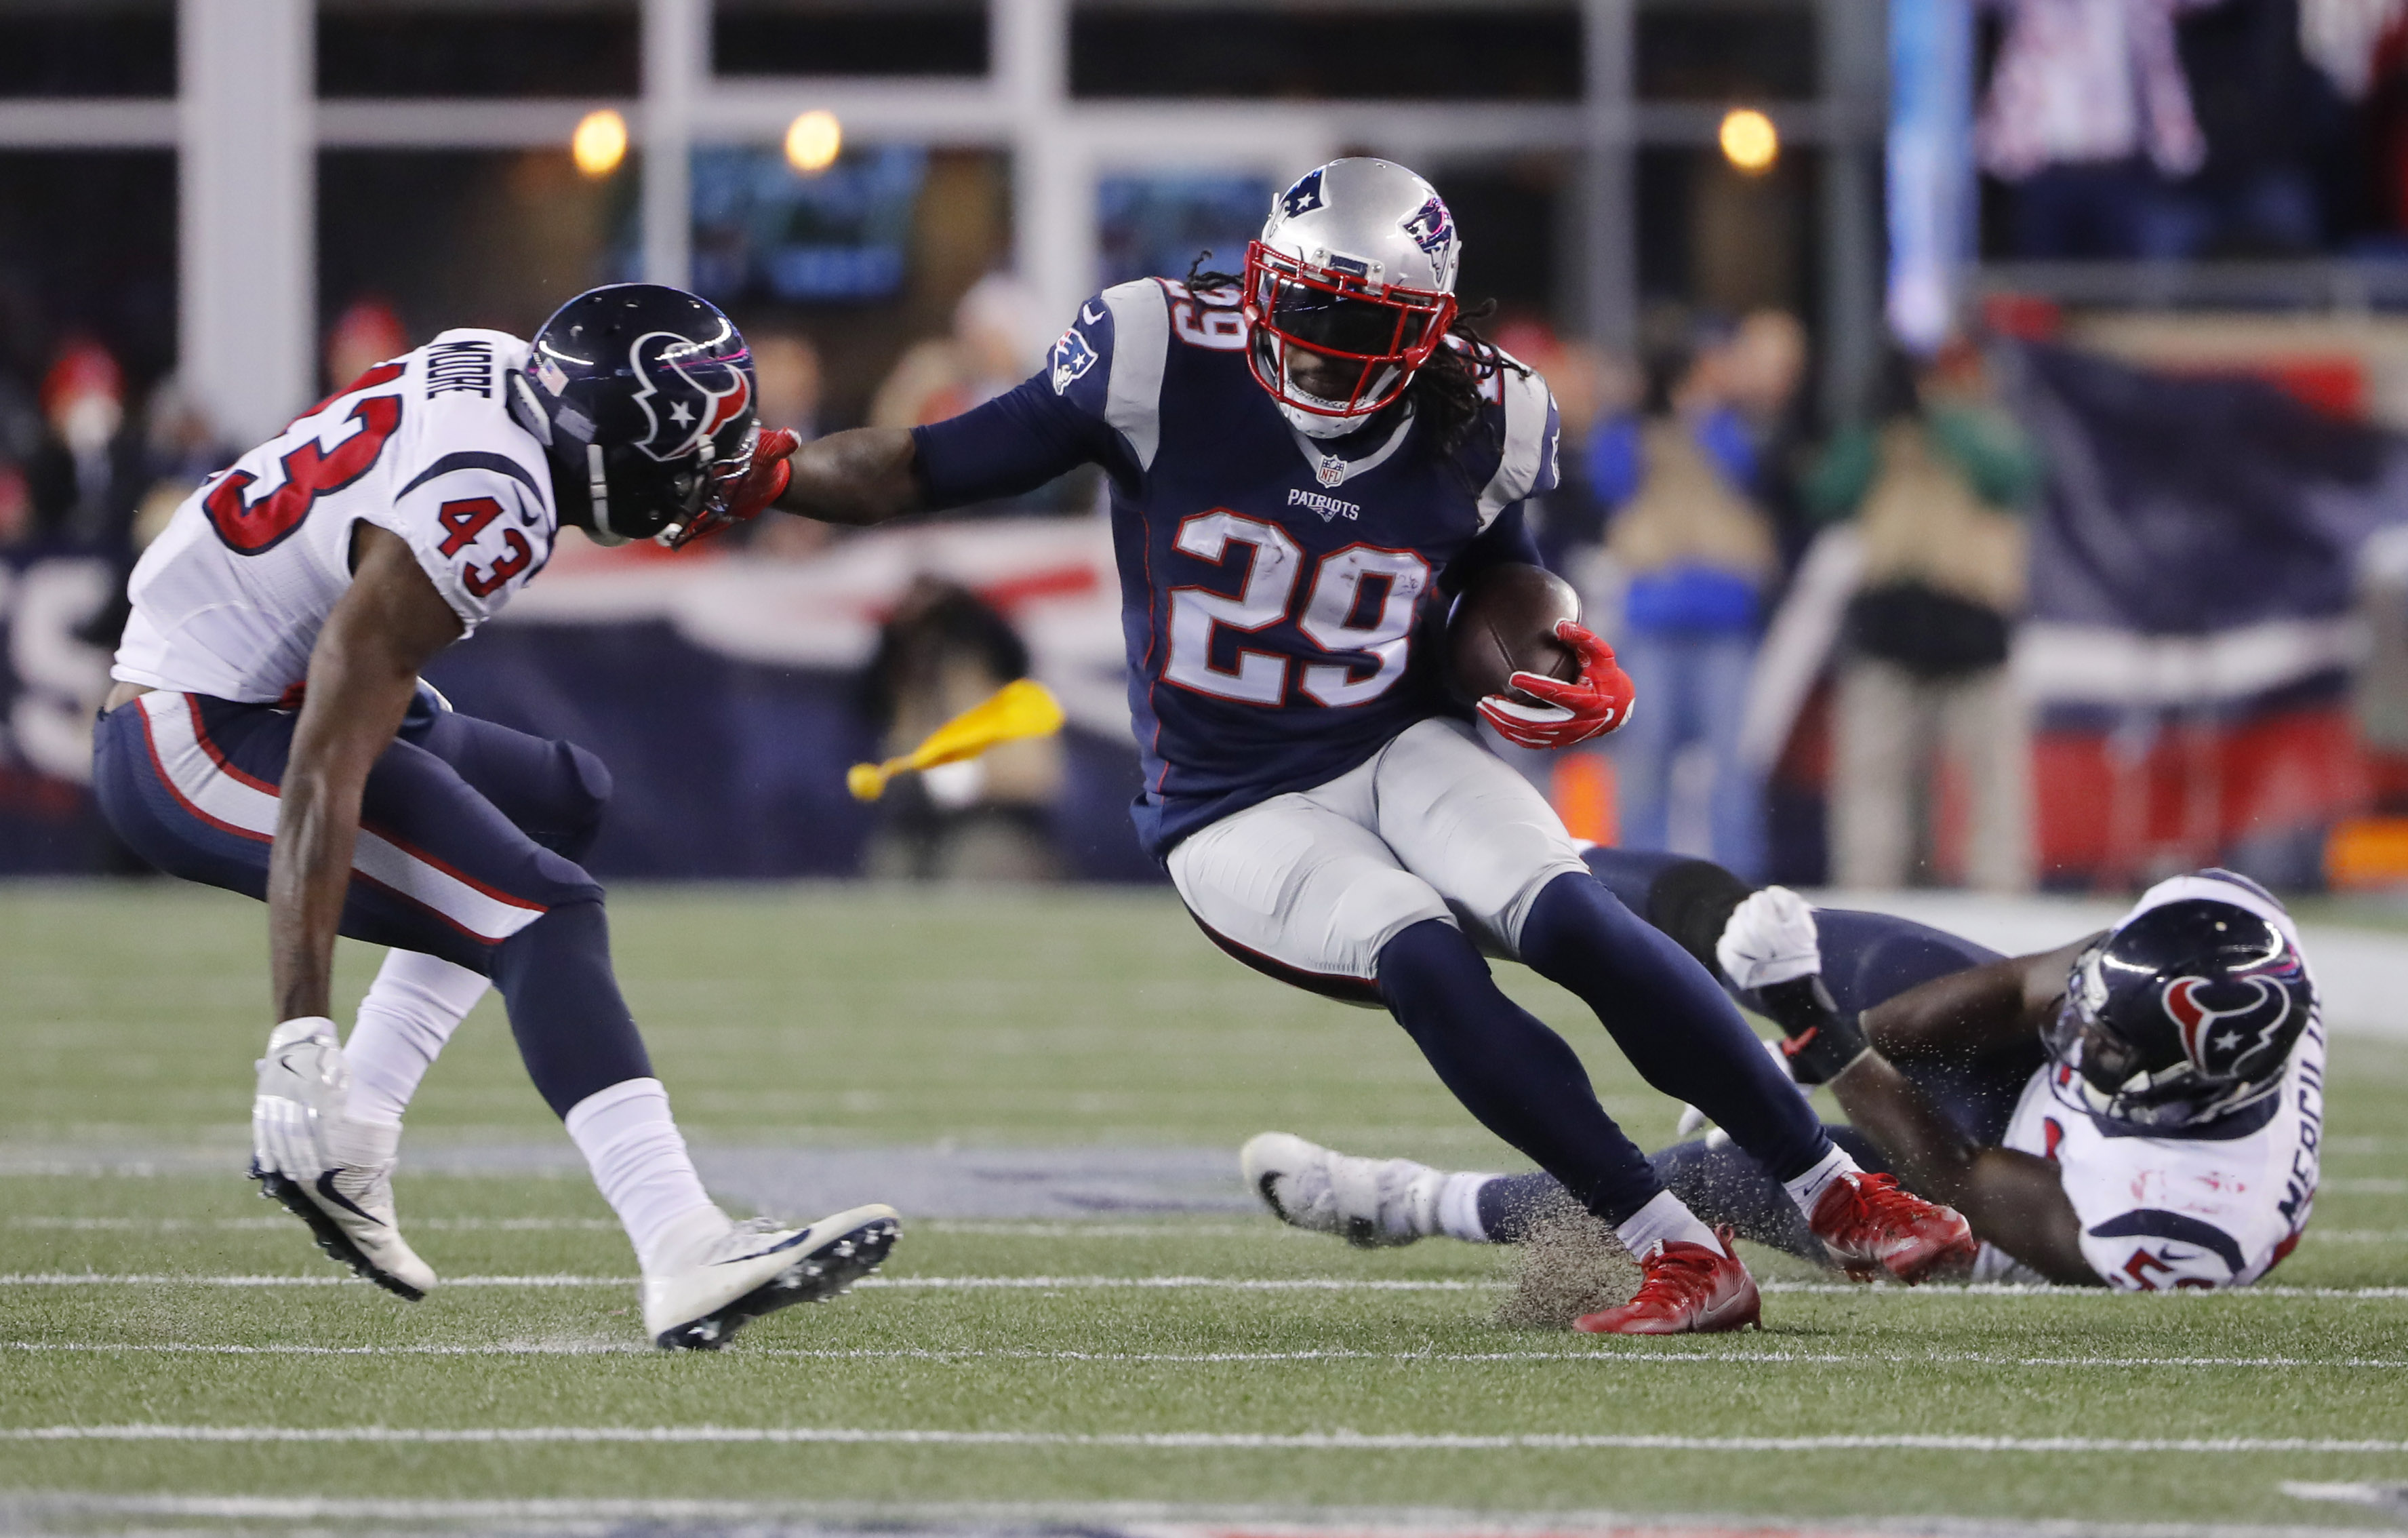 9811072-nfl-afc-divisional-houston-texans-at-new-england-patriots